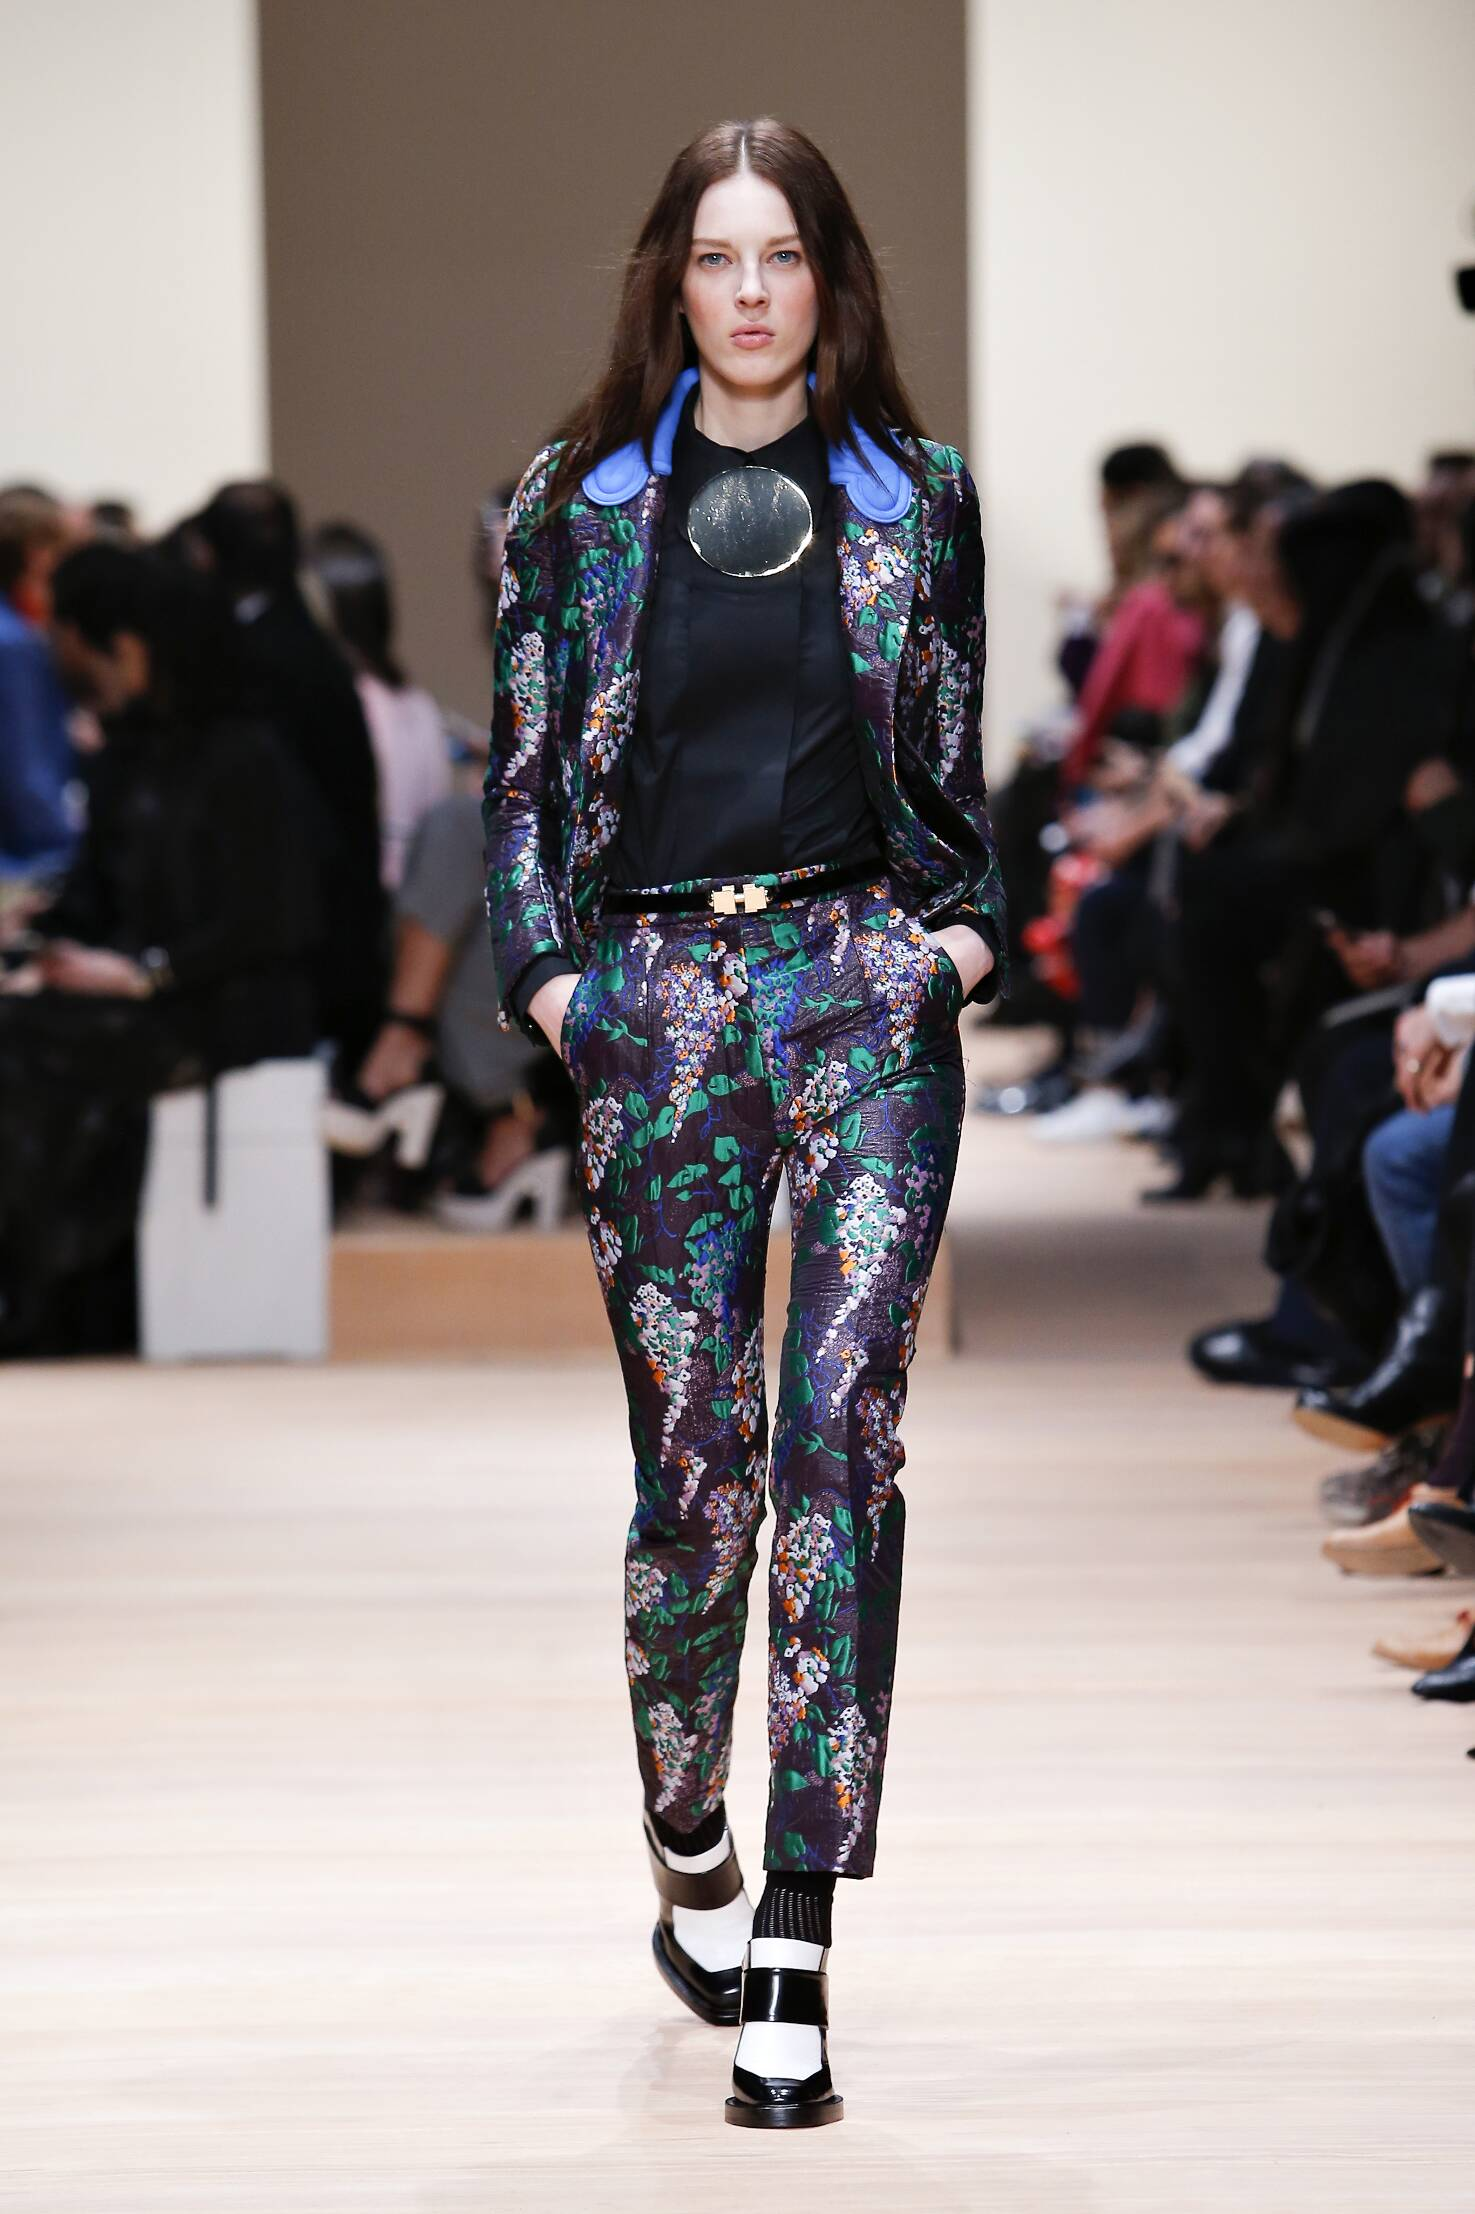 Carven Collection Winter 2015 Catwalk